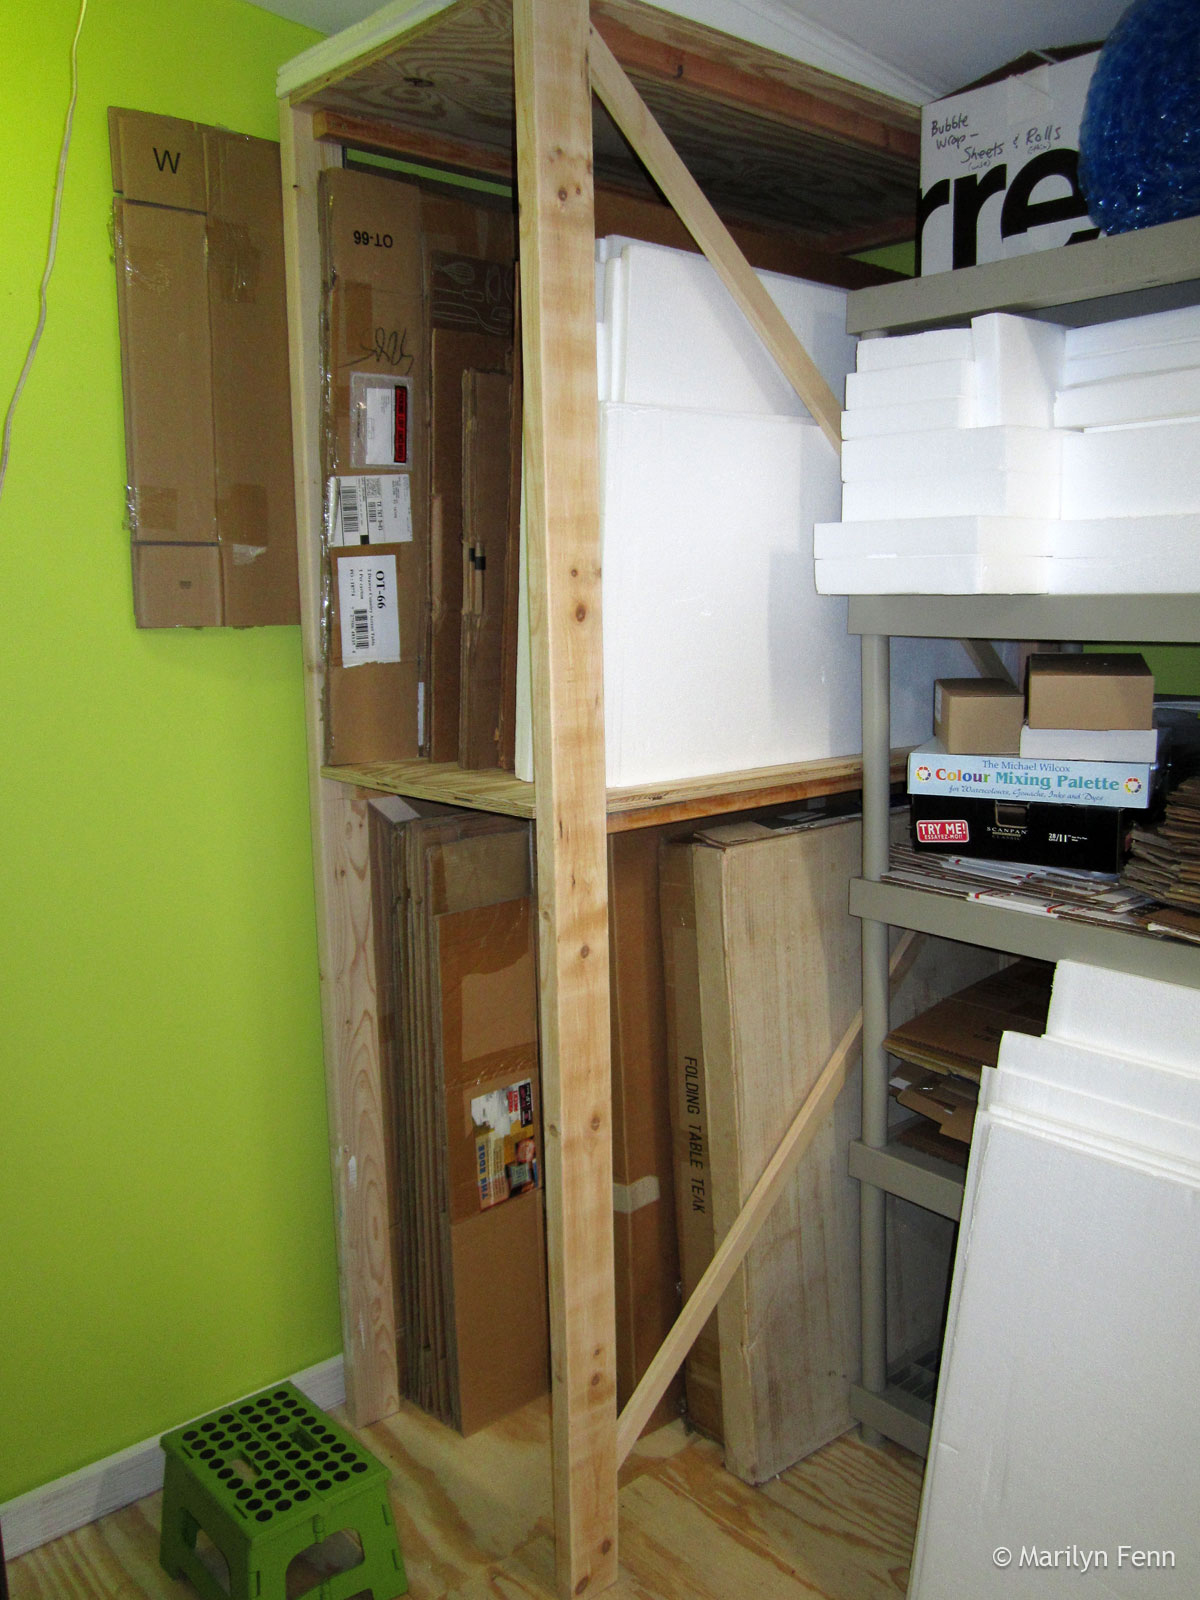 Box storage shelving completed and filled with even more stuff